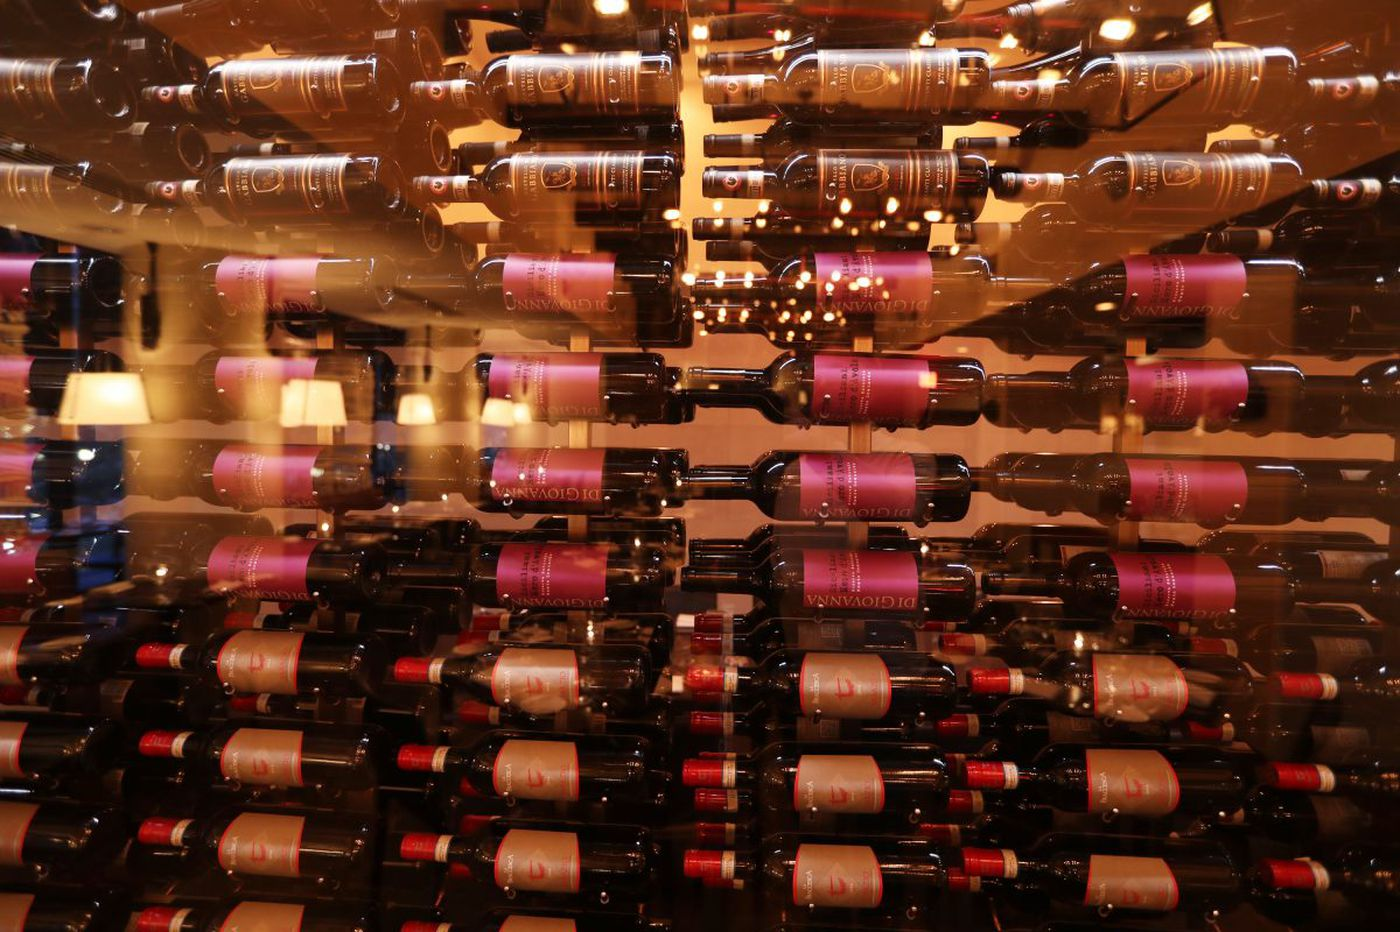 Direct wine shipments to Pa. hit $57 million last year